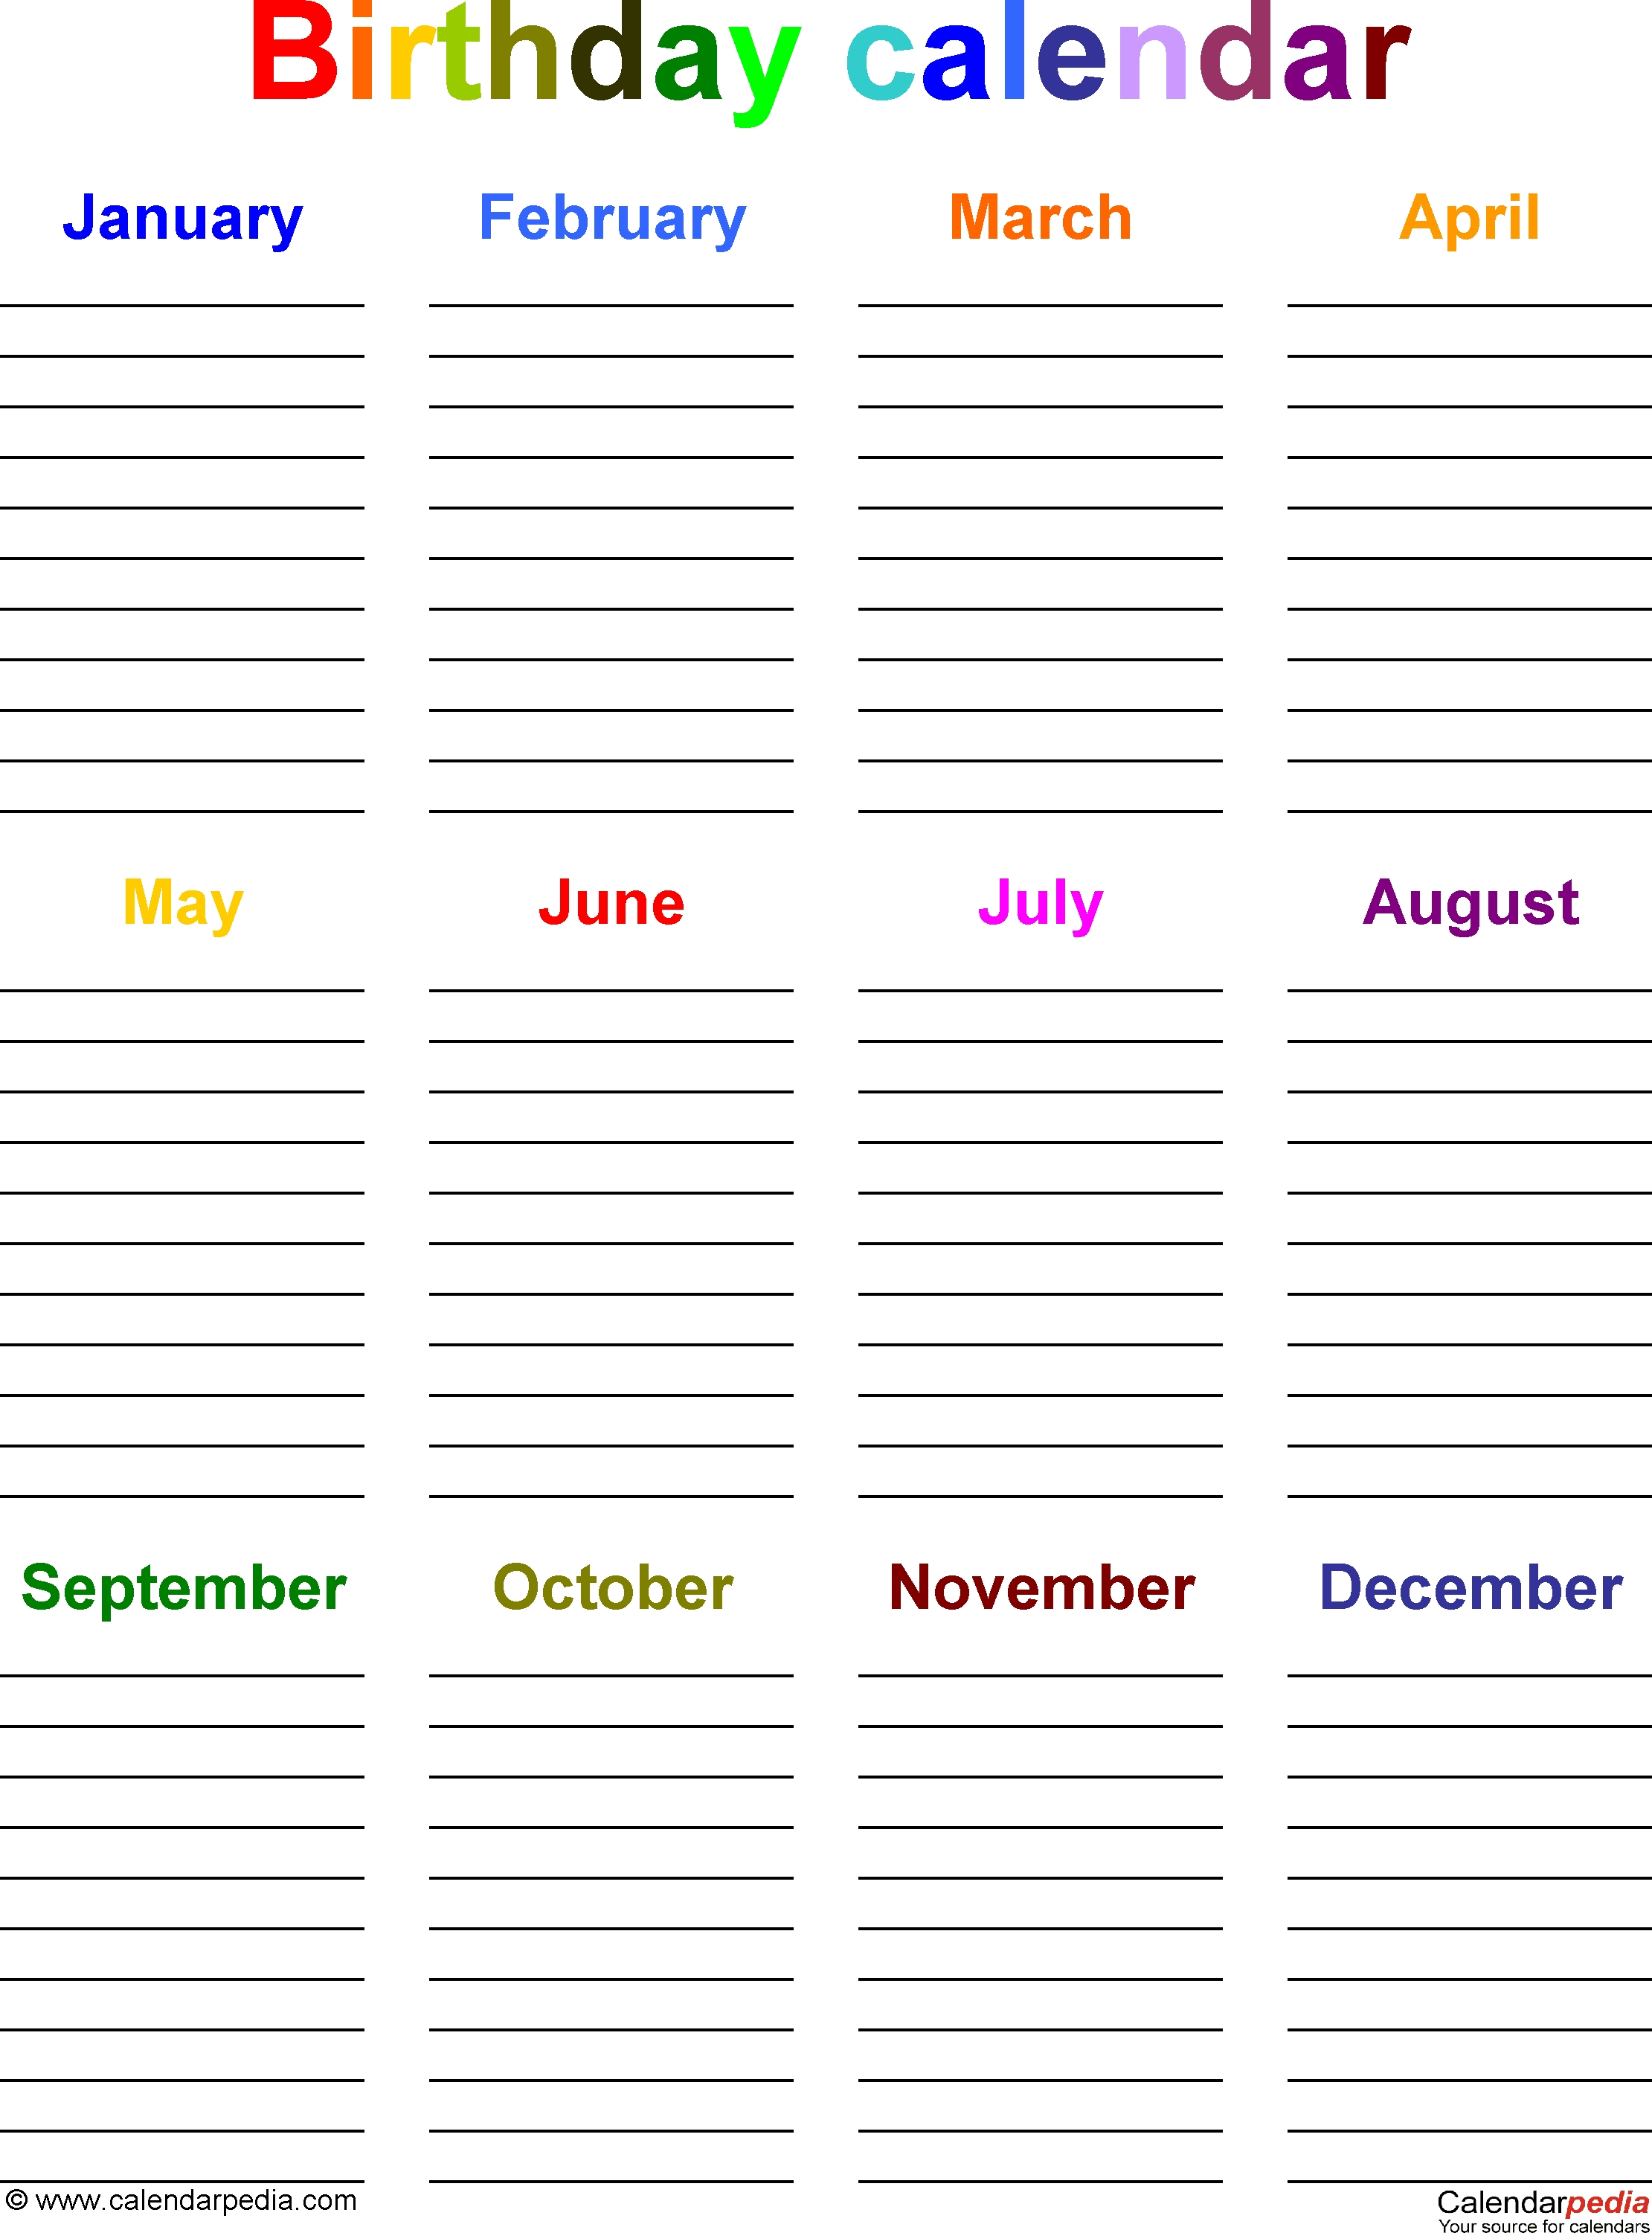 Birthday Calendars - 7 Free Printable Word Templates within Free Printable Birthday Calendar Yearly